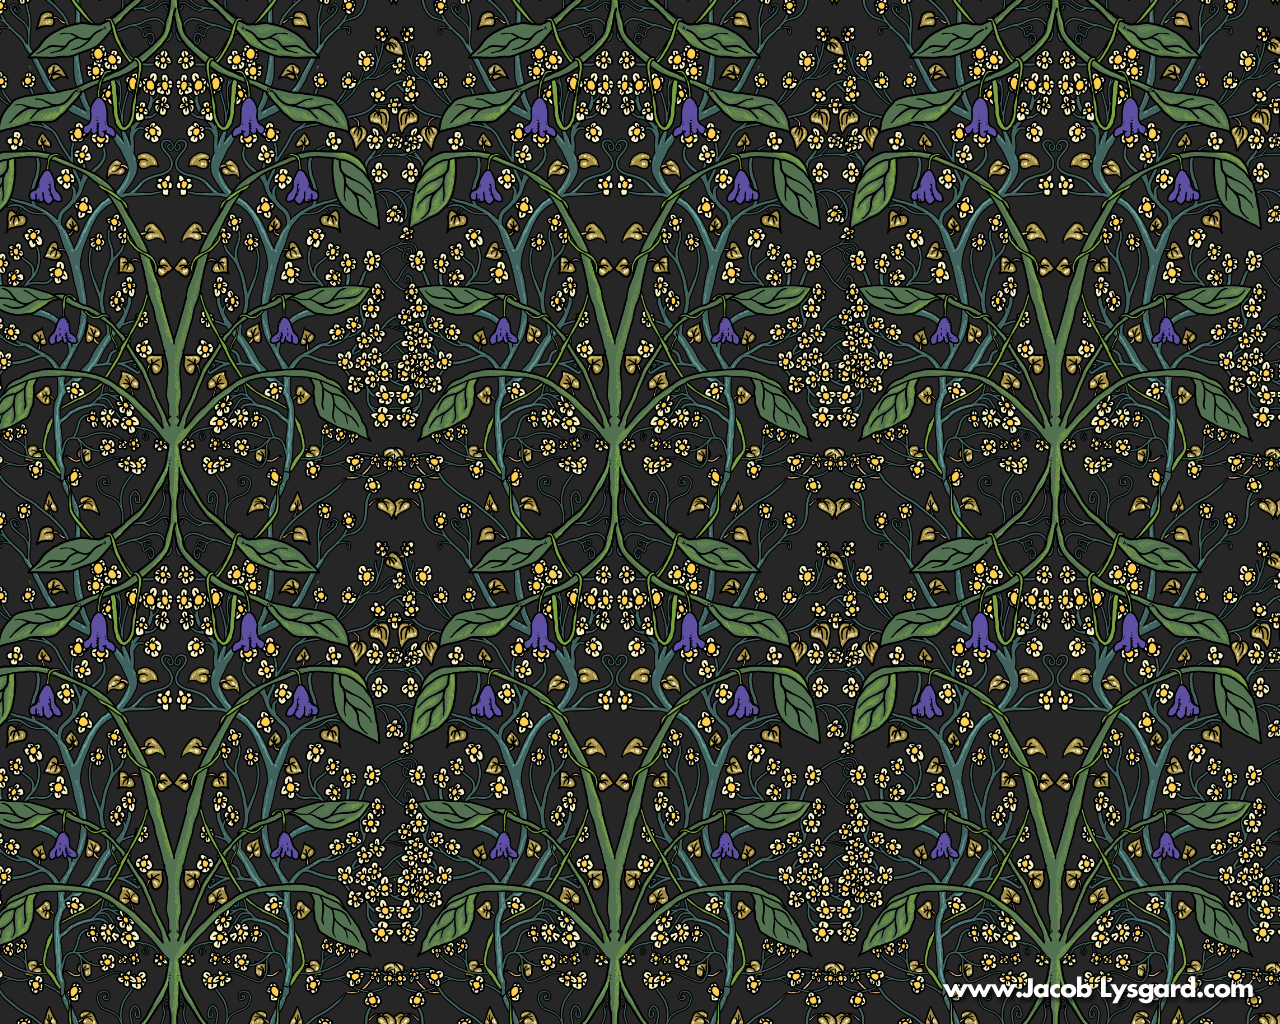 the second pattern. Click to biggify.